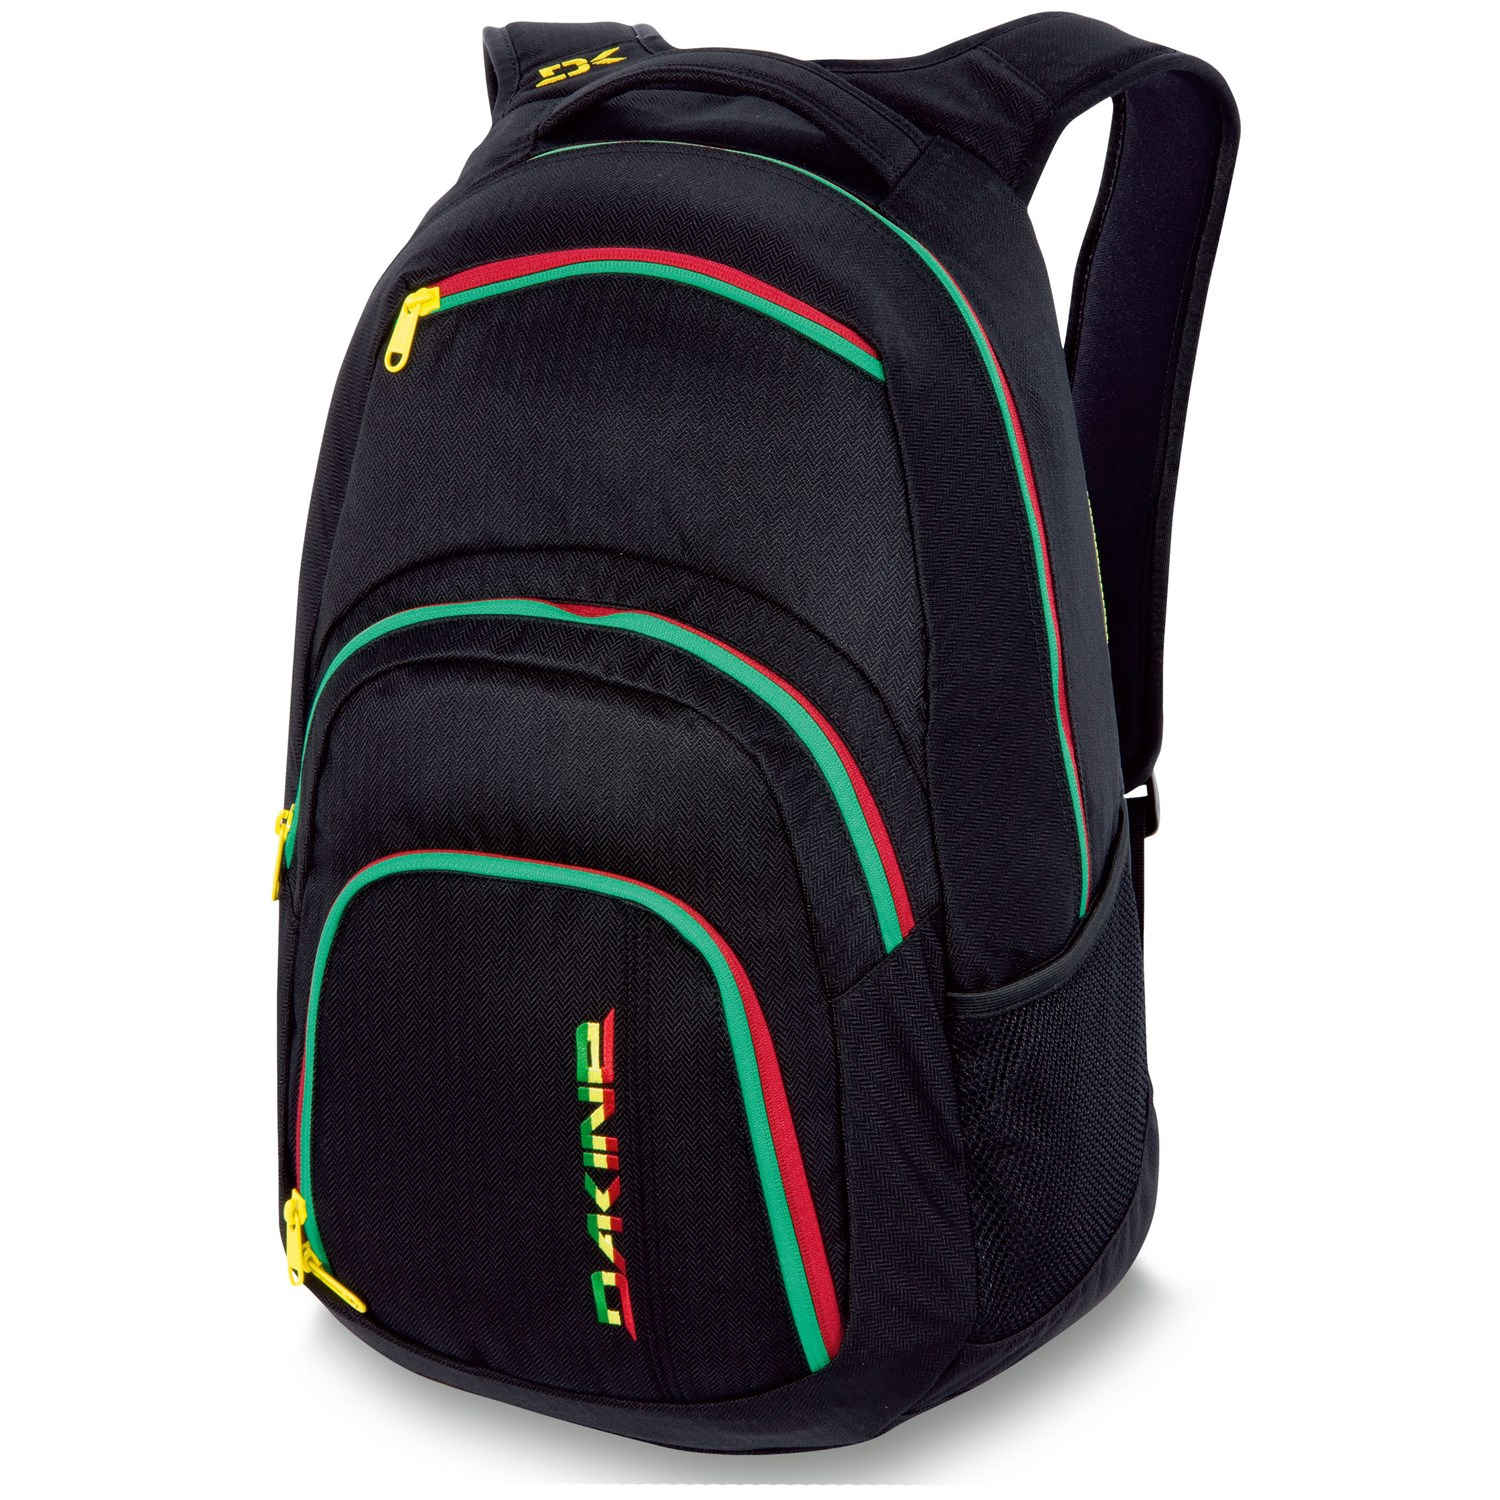 DaKine Campus Backpack - LG | evo outlet